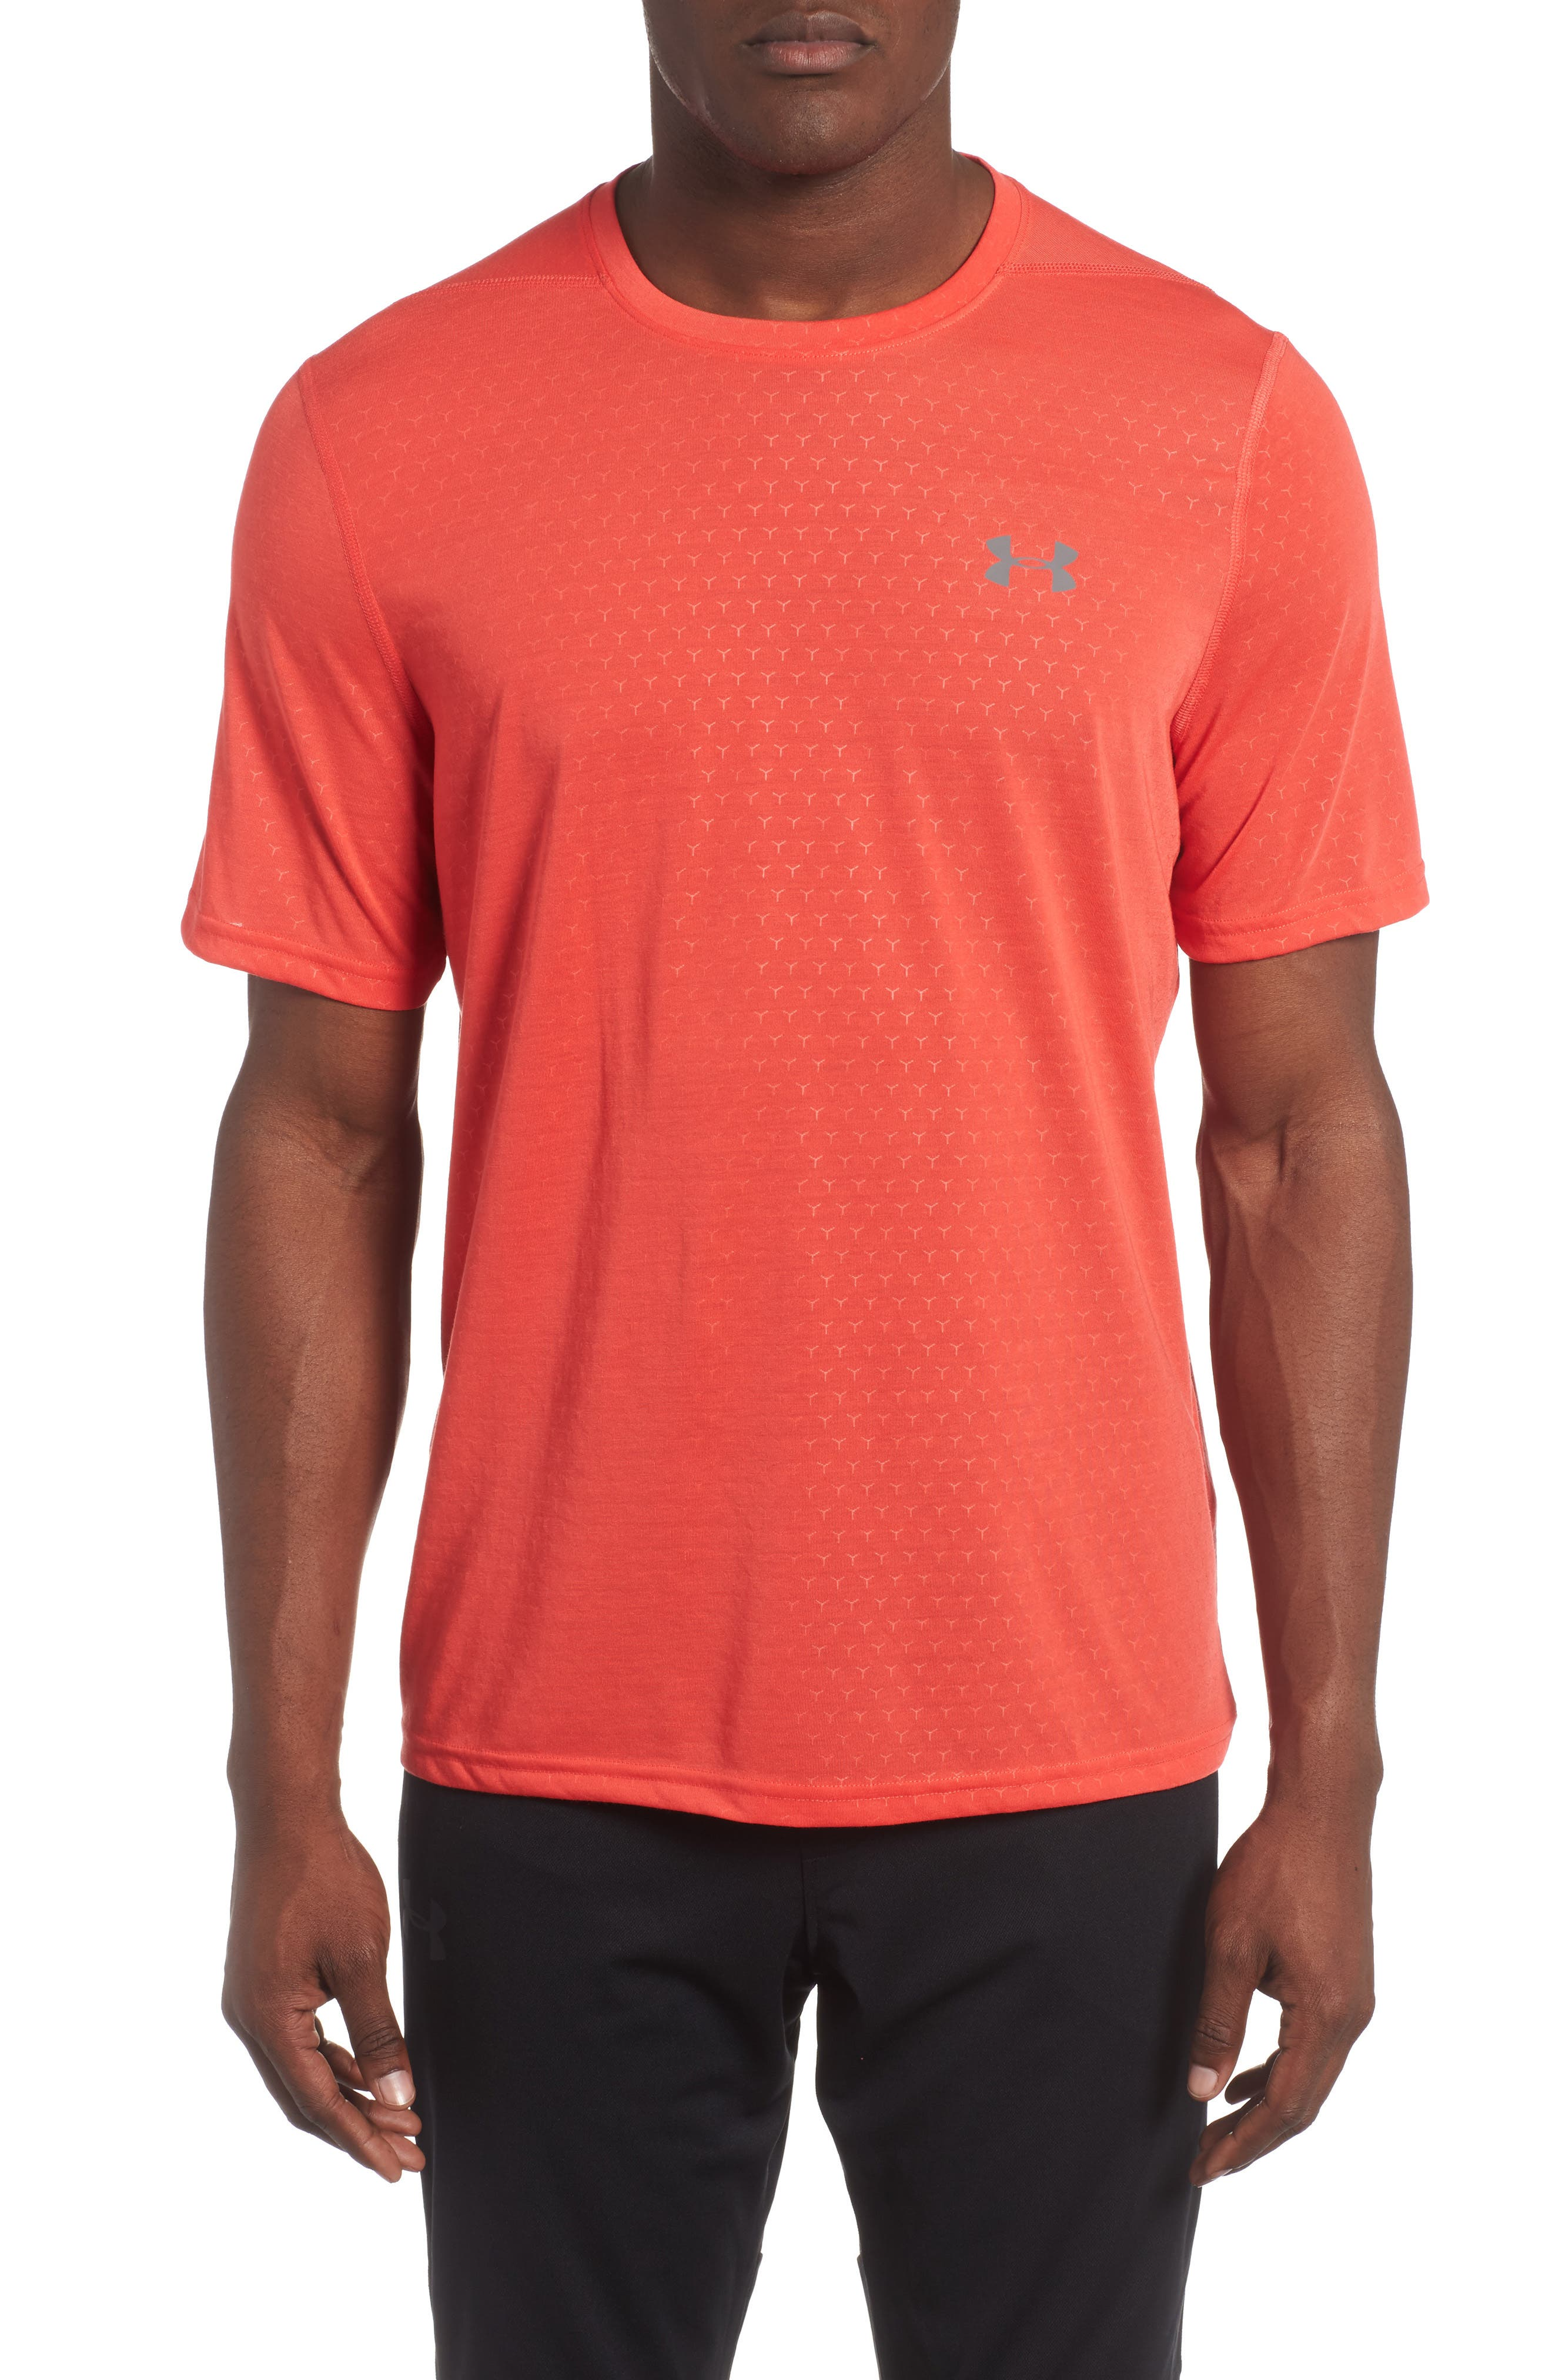 Under Armour Threadborne Siro Regular Fit T-Shirt